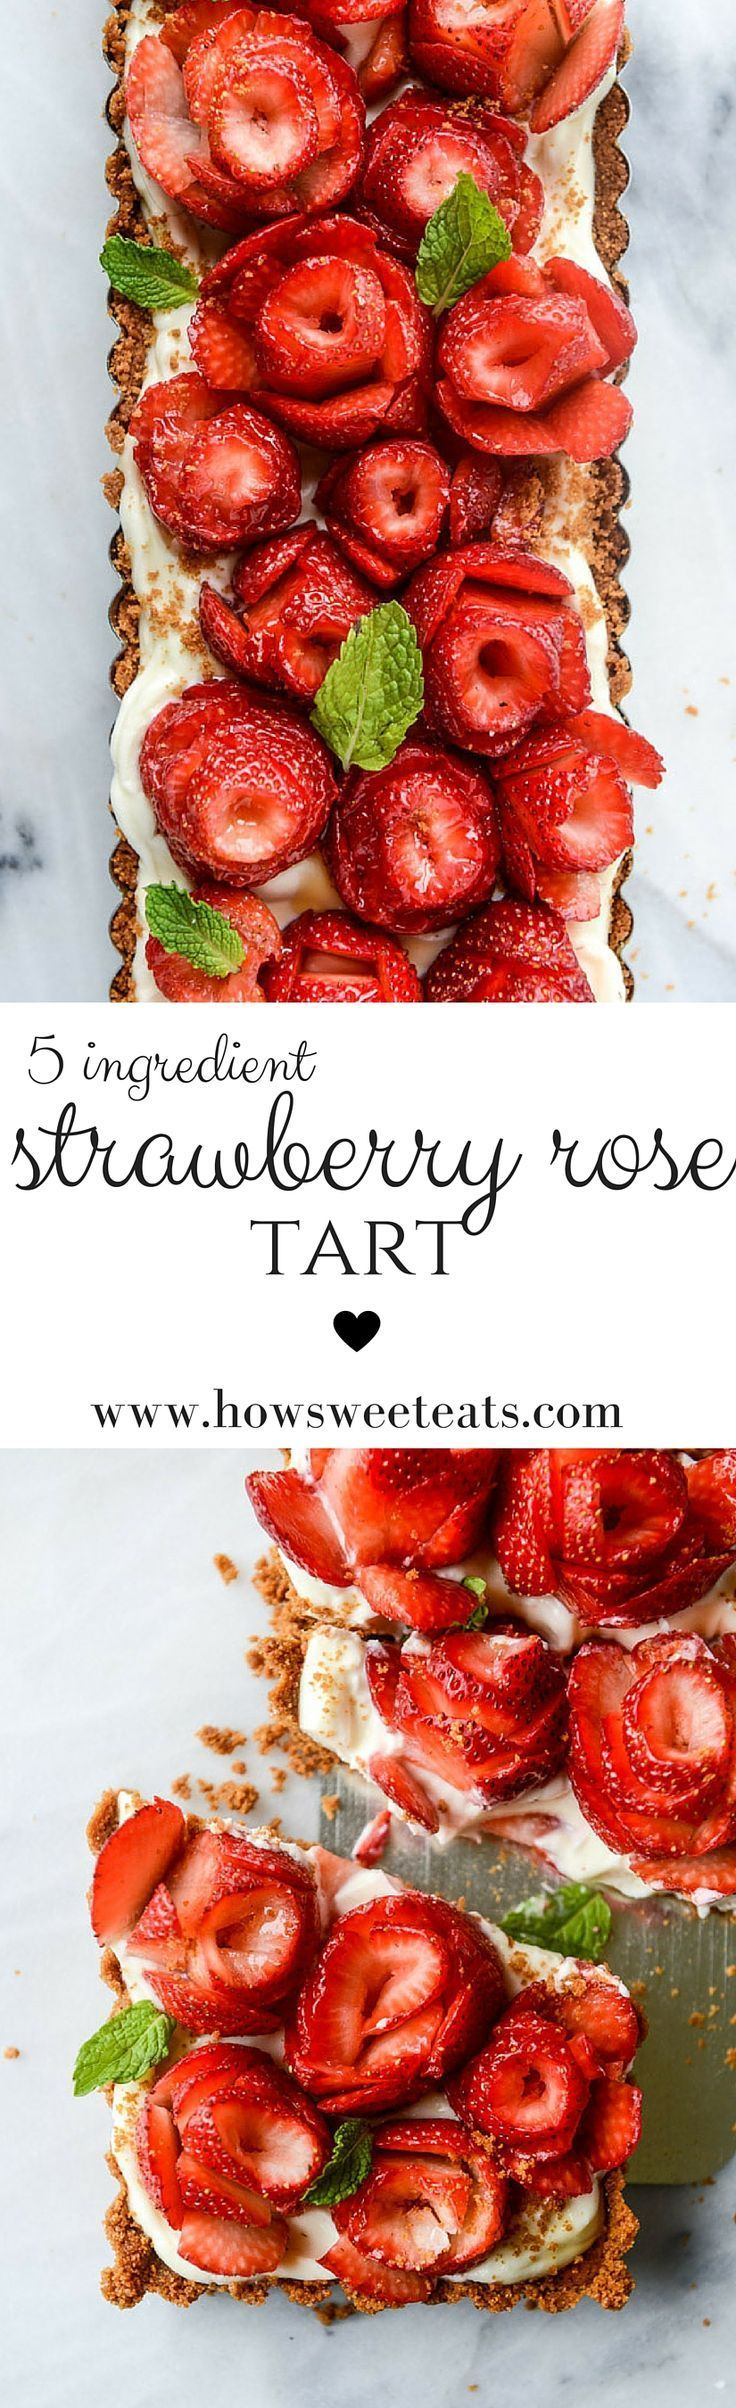 5 ingredient Strawberry Rose Tart by @howsweeteats I howsweeteats.com #strawberryrosetart #tart #strawberries #dessert